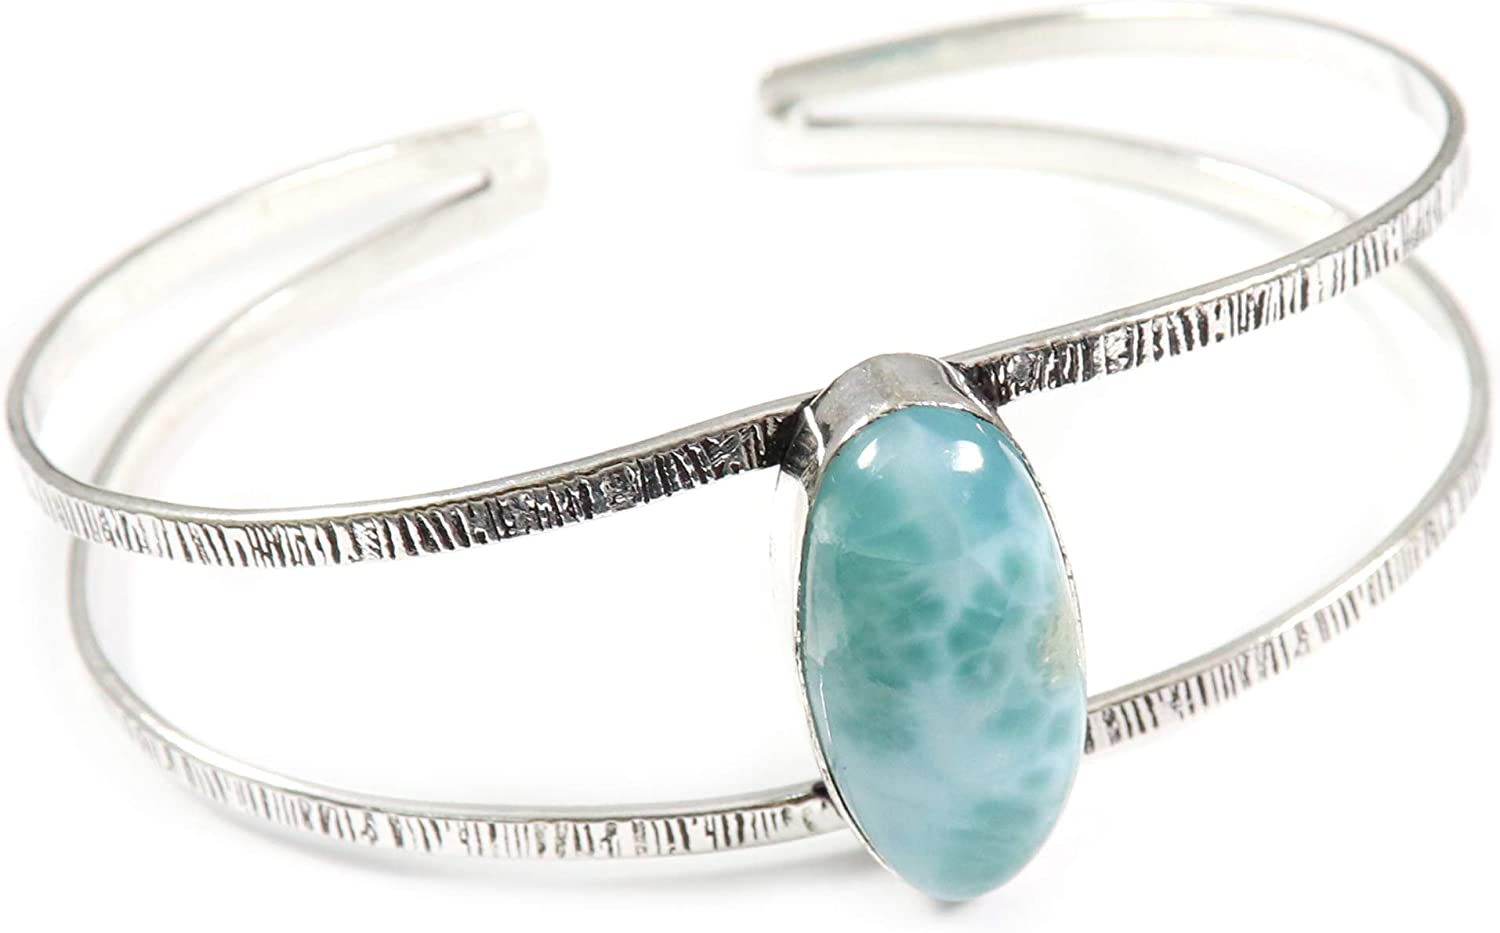 GoyalCrafts Max 77% OFF Larimar Cuff Bracelet Natural Silver Jewelry Max 65% OFF Plated